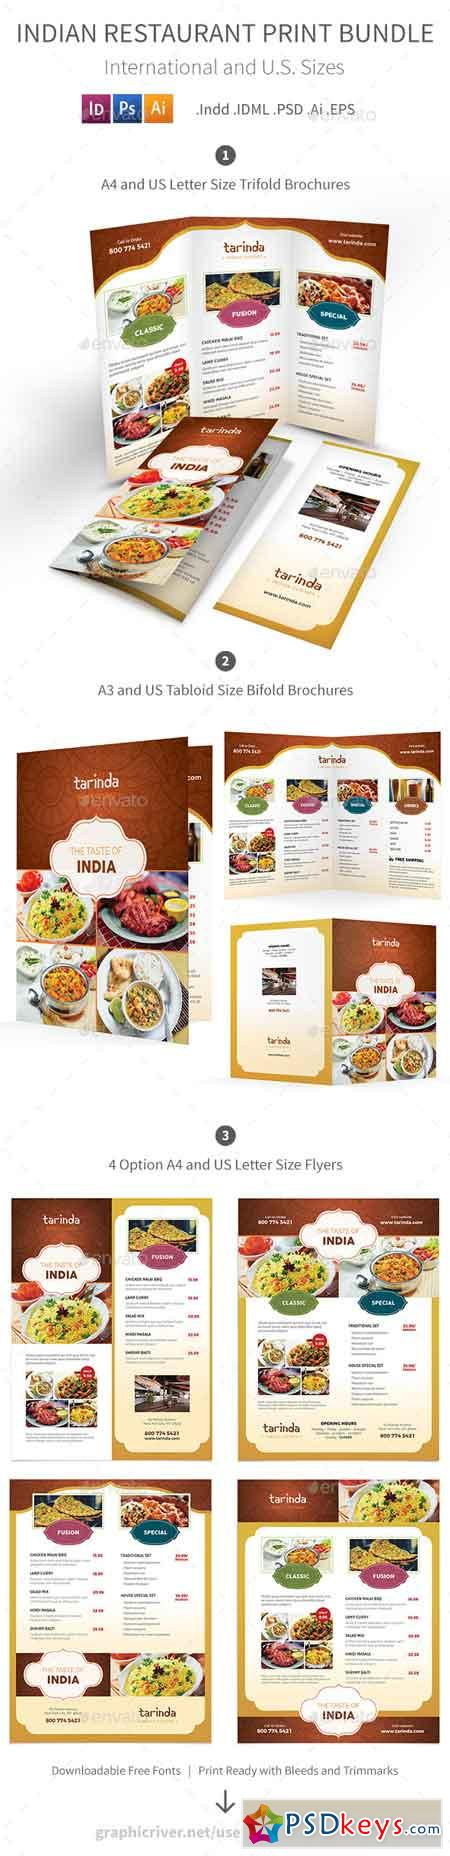 Indian Restaurant Menu Print Bundle 19289137